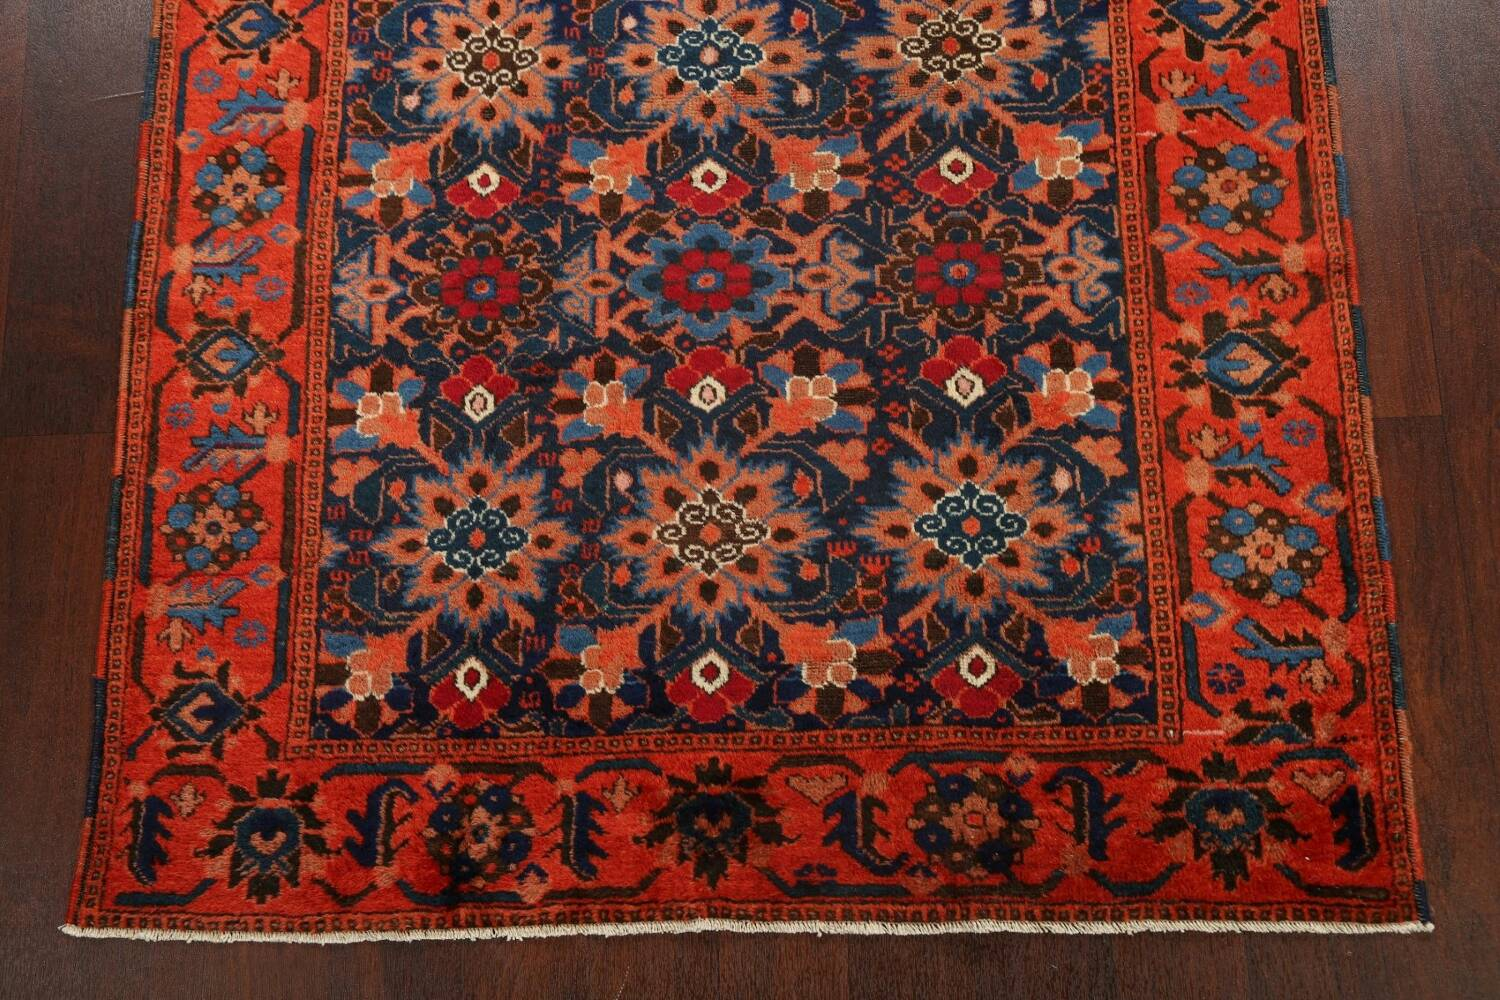 Antique 100% Vegetable Dye Malayer Persian Area Rug 4x7 image 8